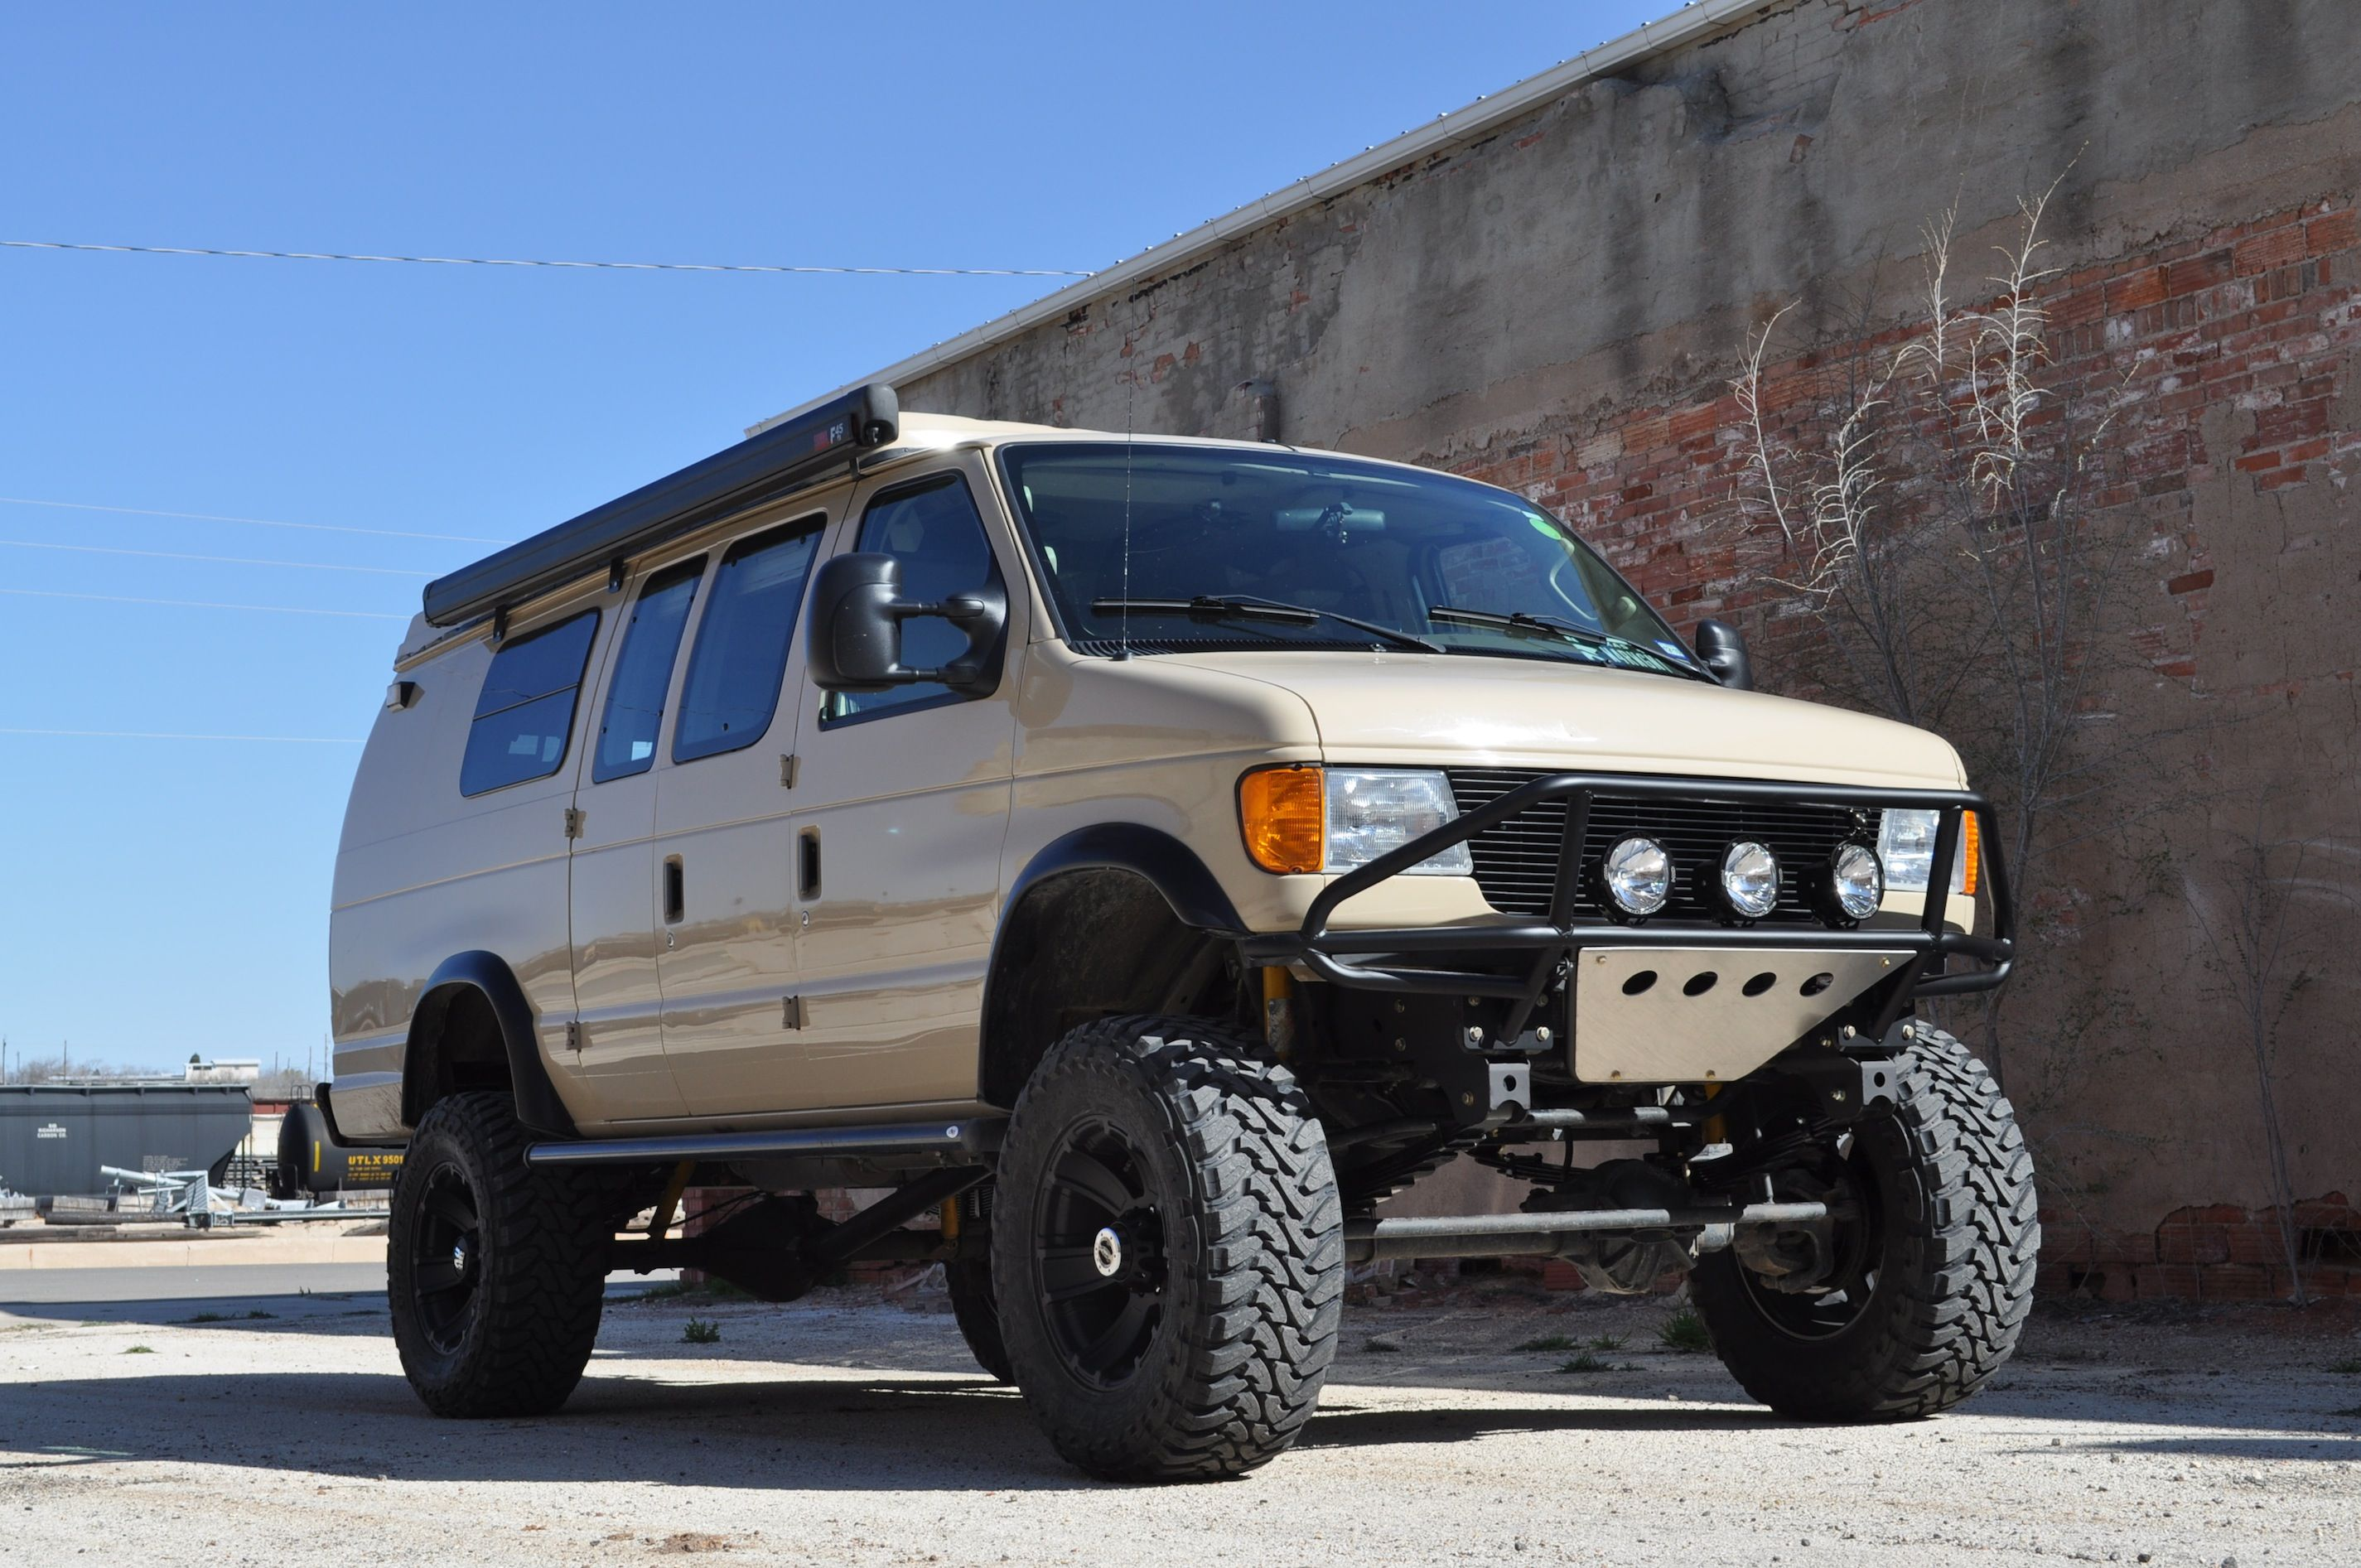 4x4 Van Camper Google Search Vehicles For Me And The